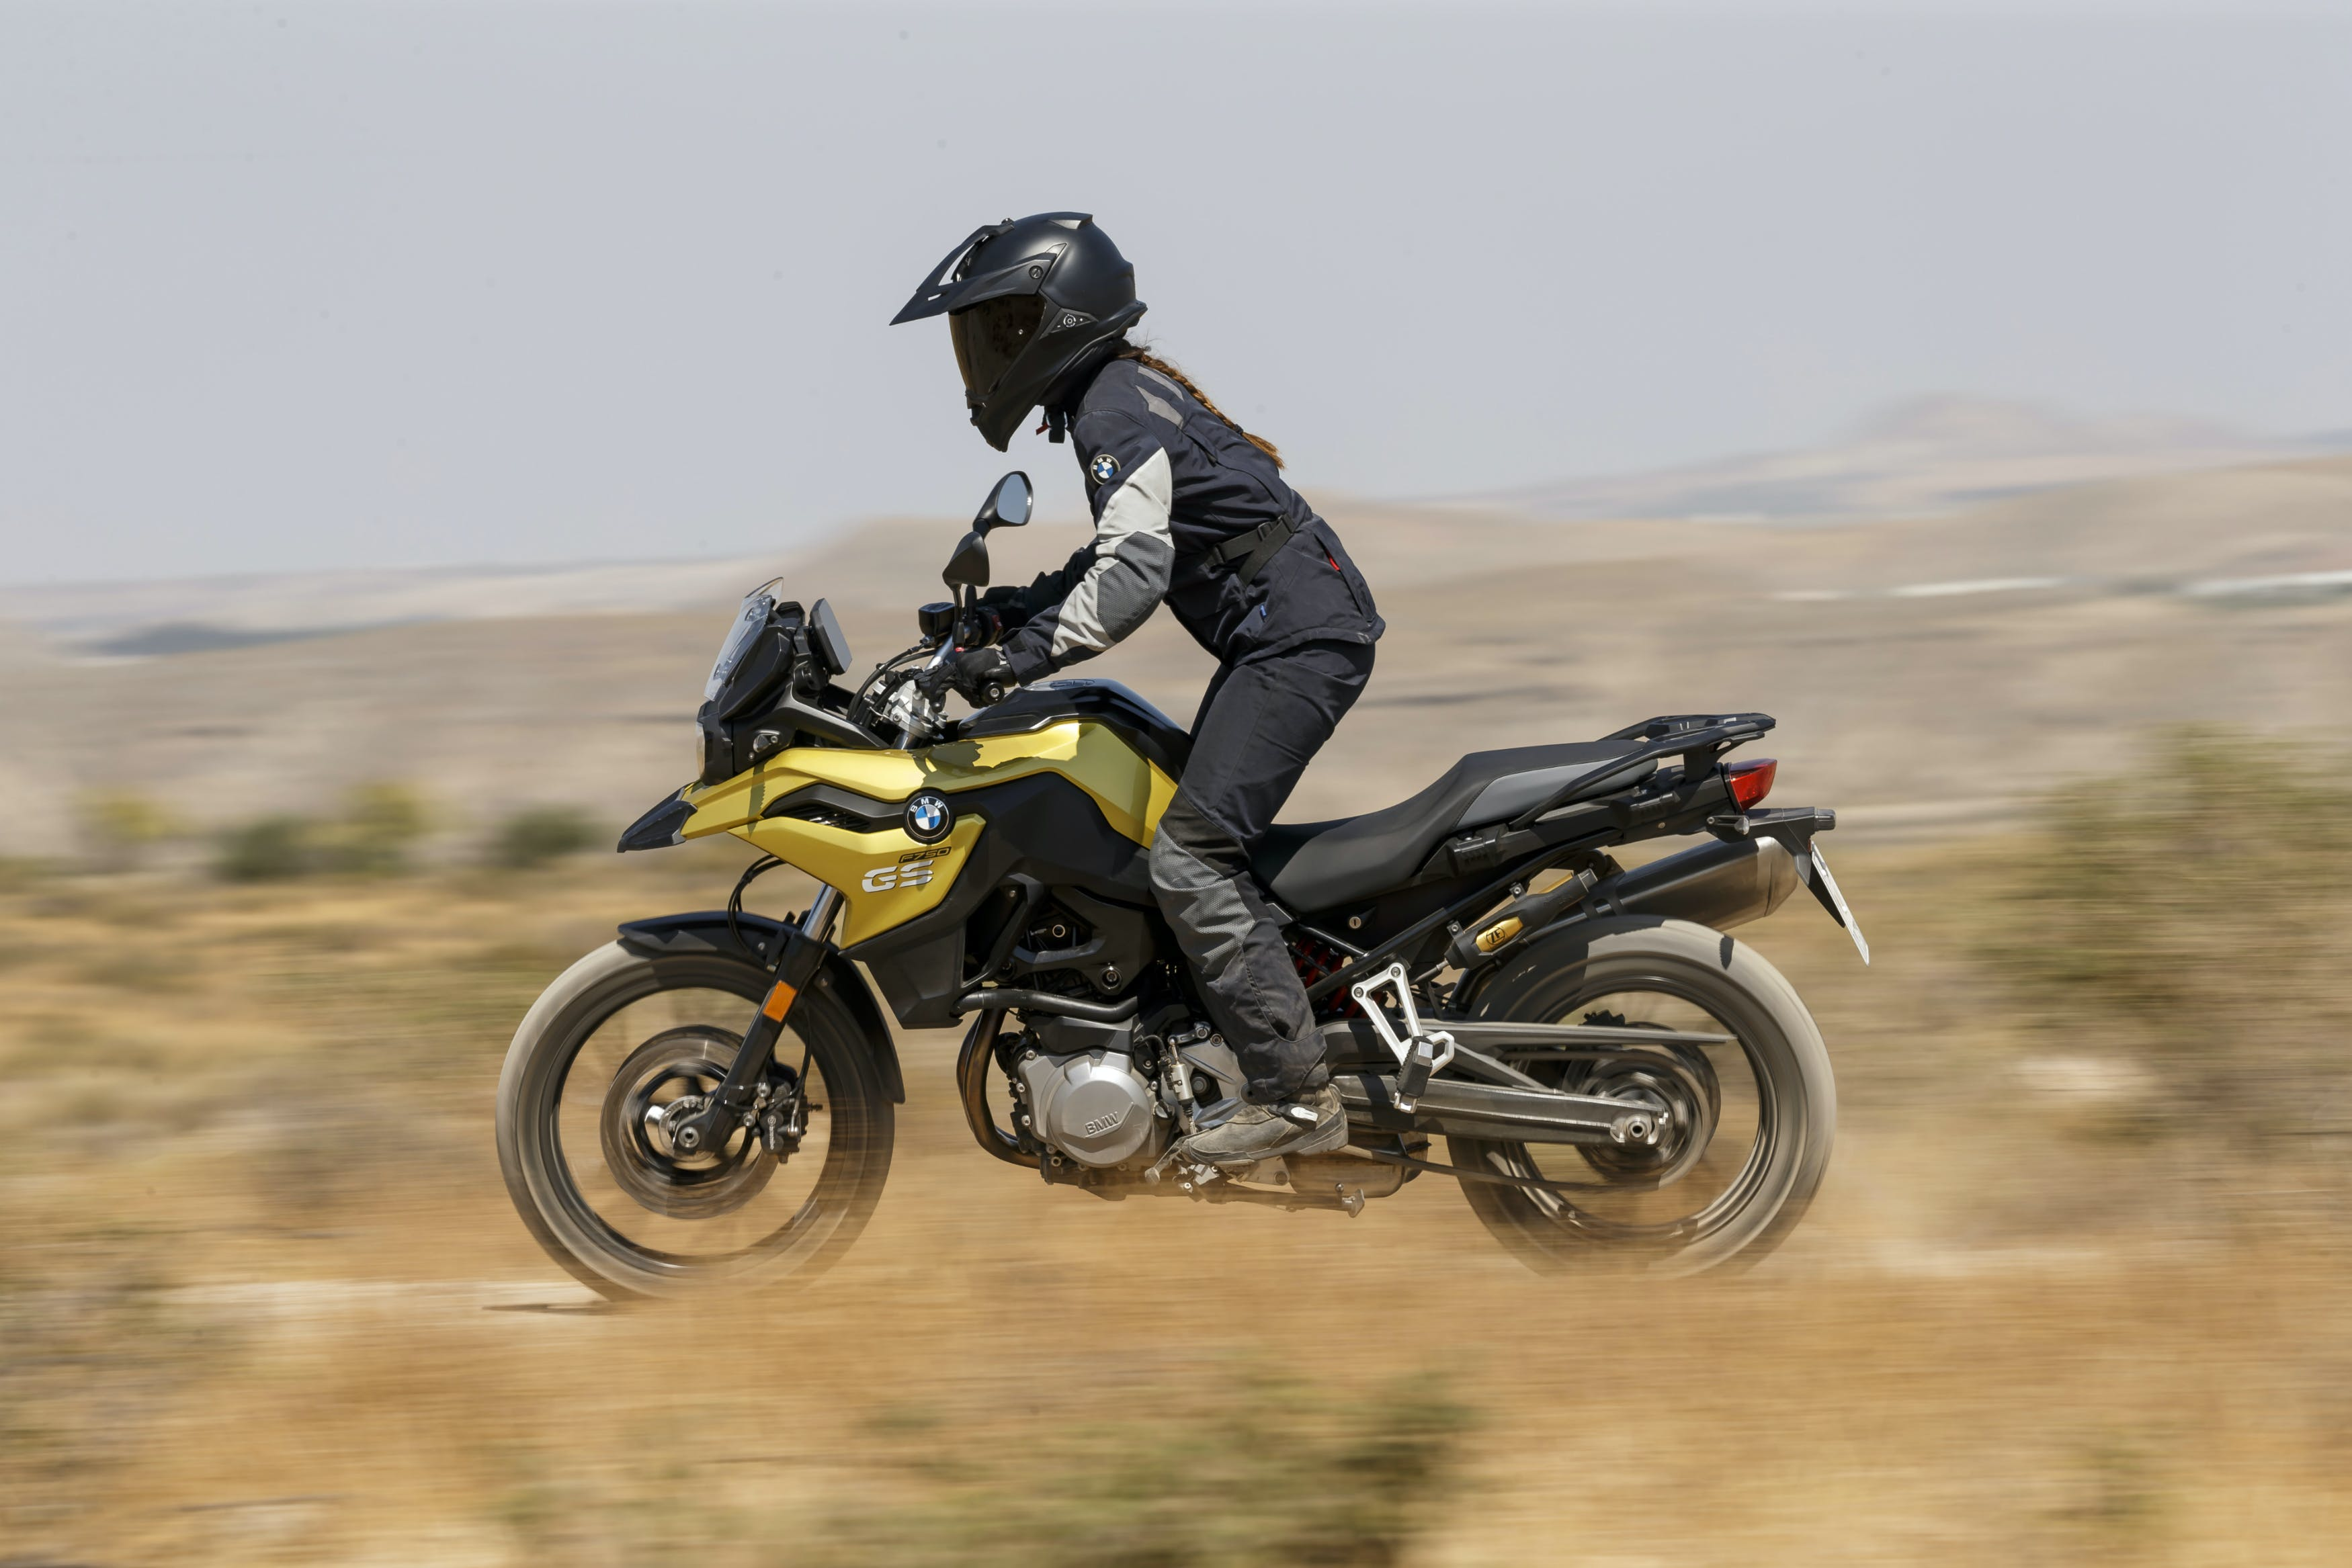 BMW F 750 GS TOUR motorcycle riding on a hill road